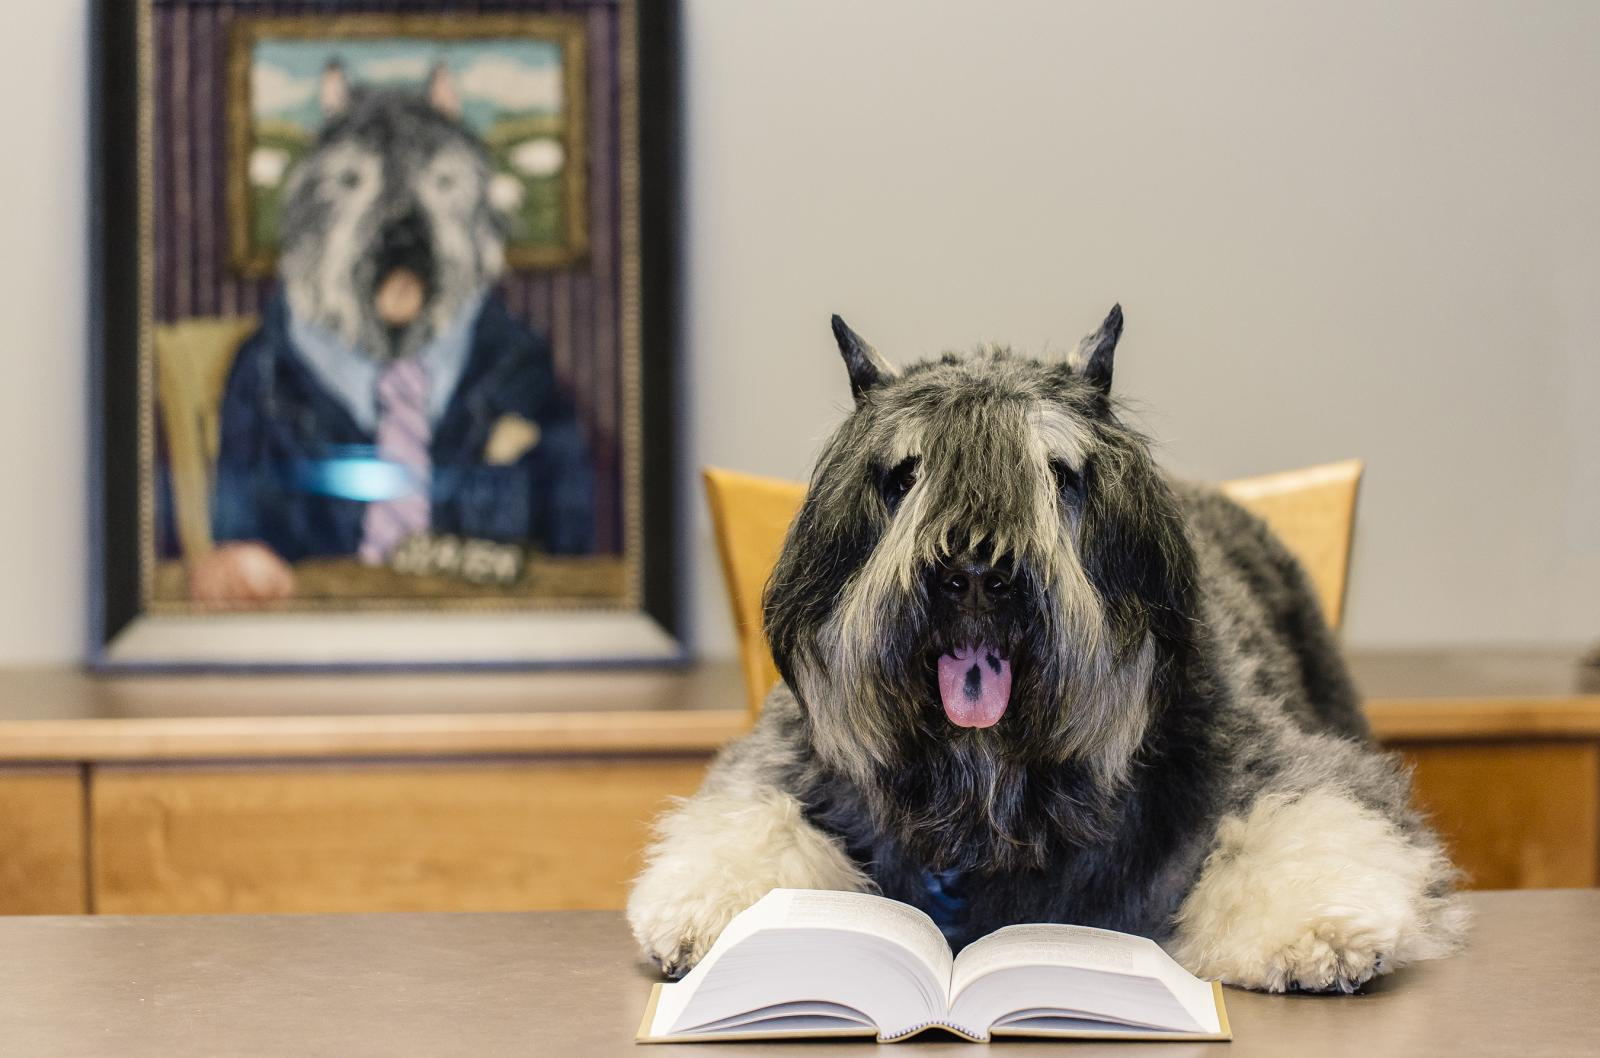 A true law dog, Slater, a shaggy dog wearing a necktie sits at desk in front of an open legal book. Behind Slater is a painting that shows the same dog in a full suit. While the photo is intended to be fun and whimsical, i